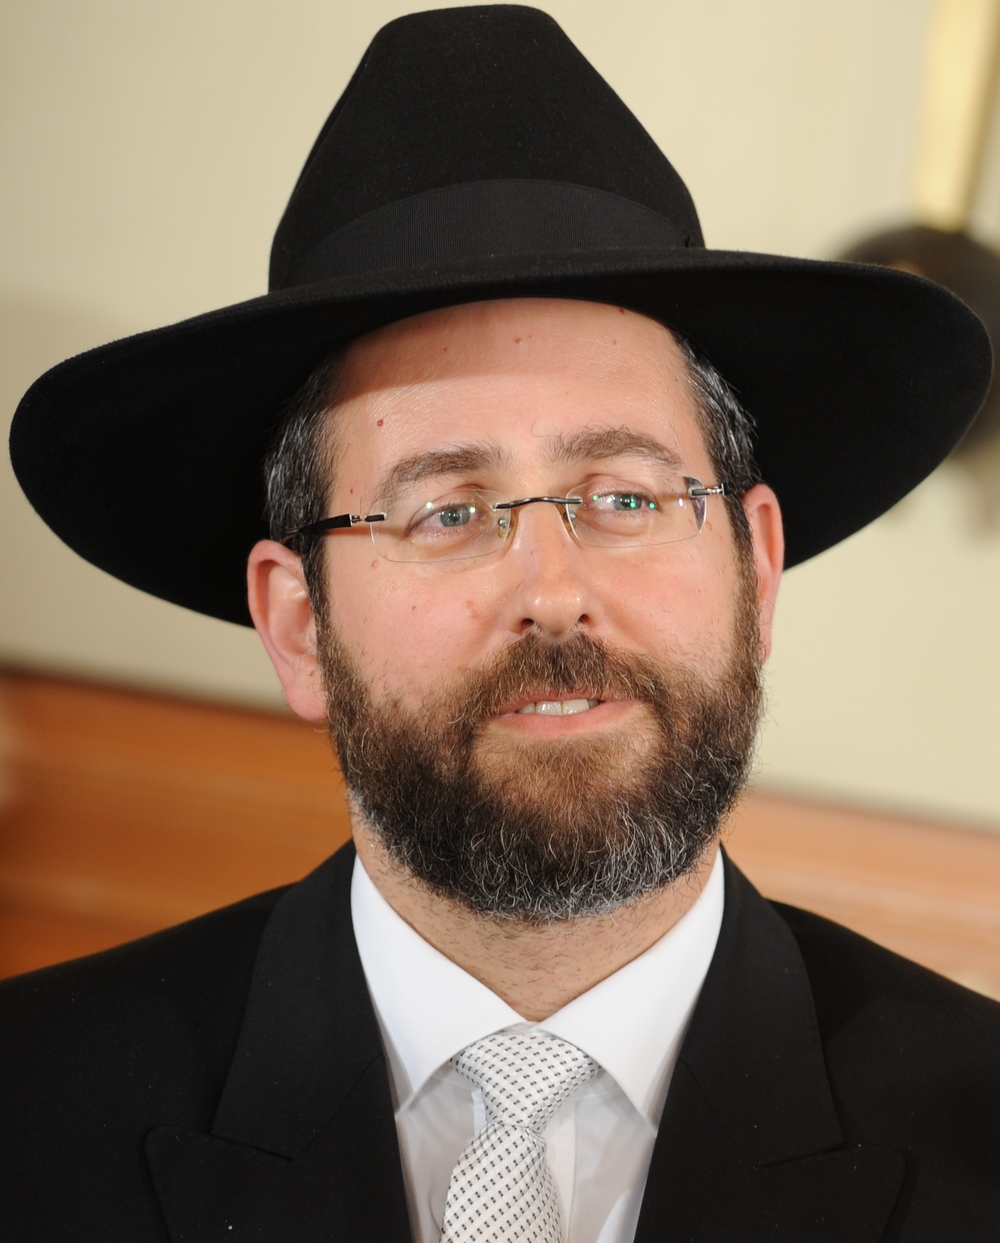 Rabbi David Lau, pictured, was elected as the Ashkenazi chief rabbi of Israel. Credit: Wikimedia Commons.